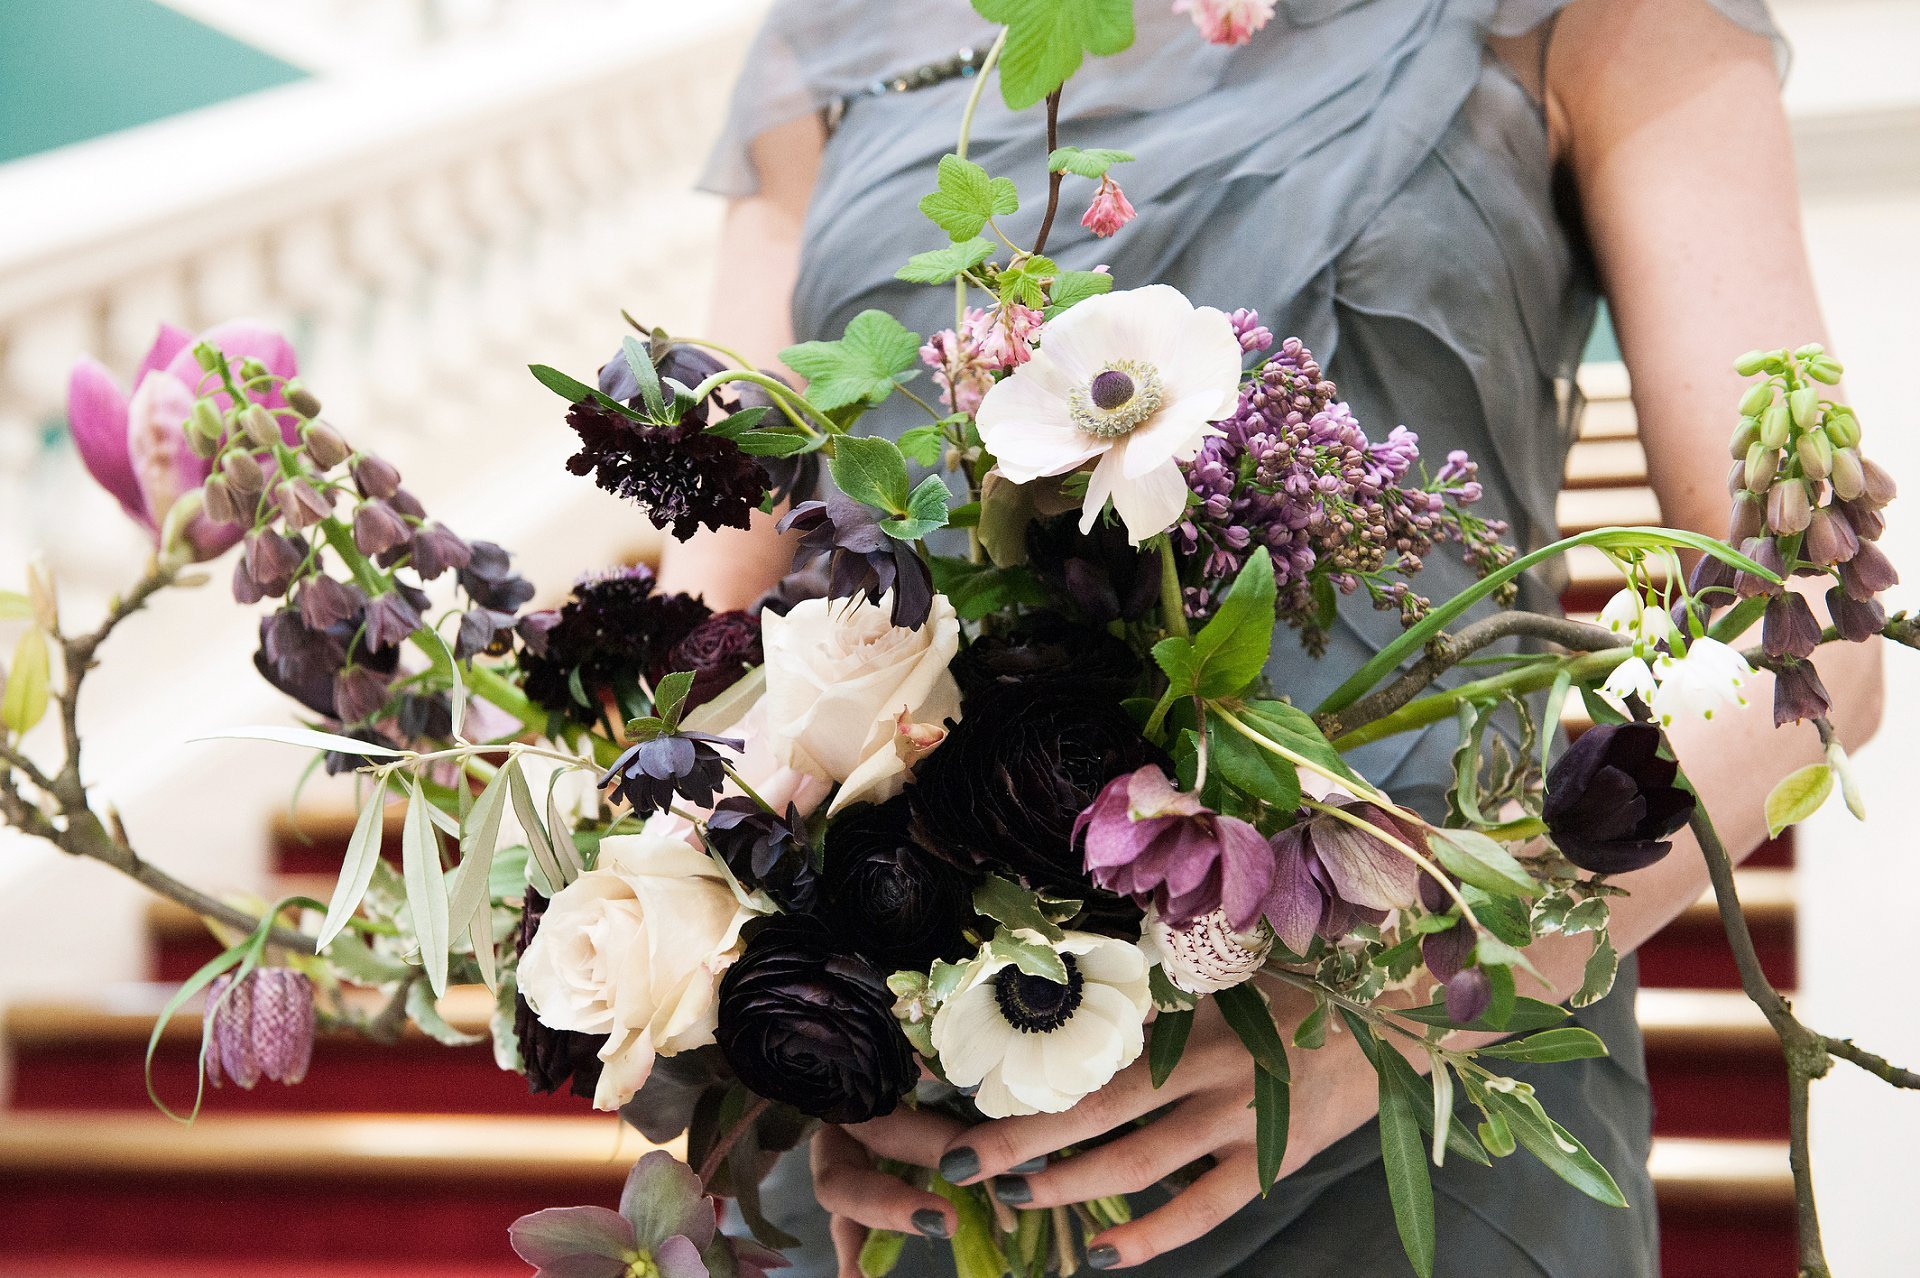 Bridal bouquet using natural, wild and wondrous British cut flowers designed by London florist Bloomologie for this small Woolwich Town Hall Spring wedding